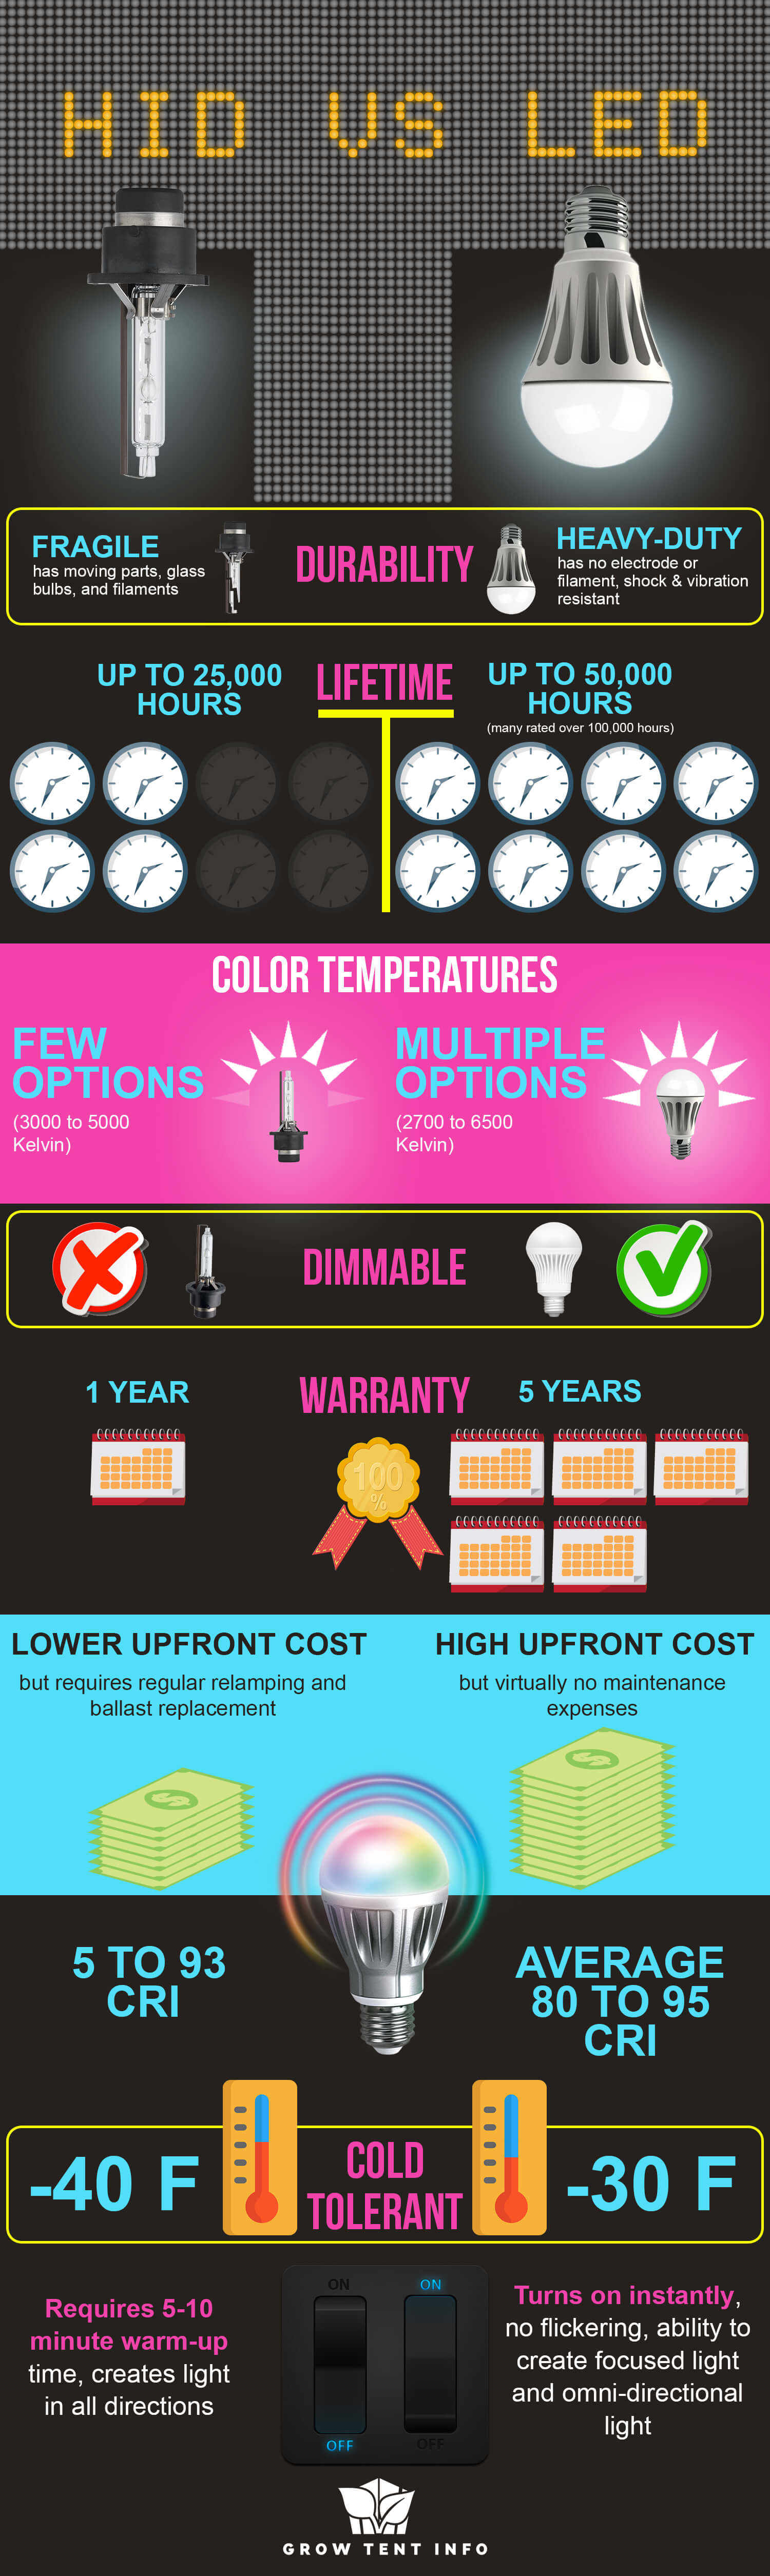 LED-vs-HID-Lamps